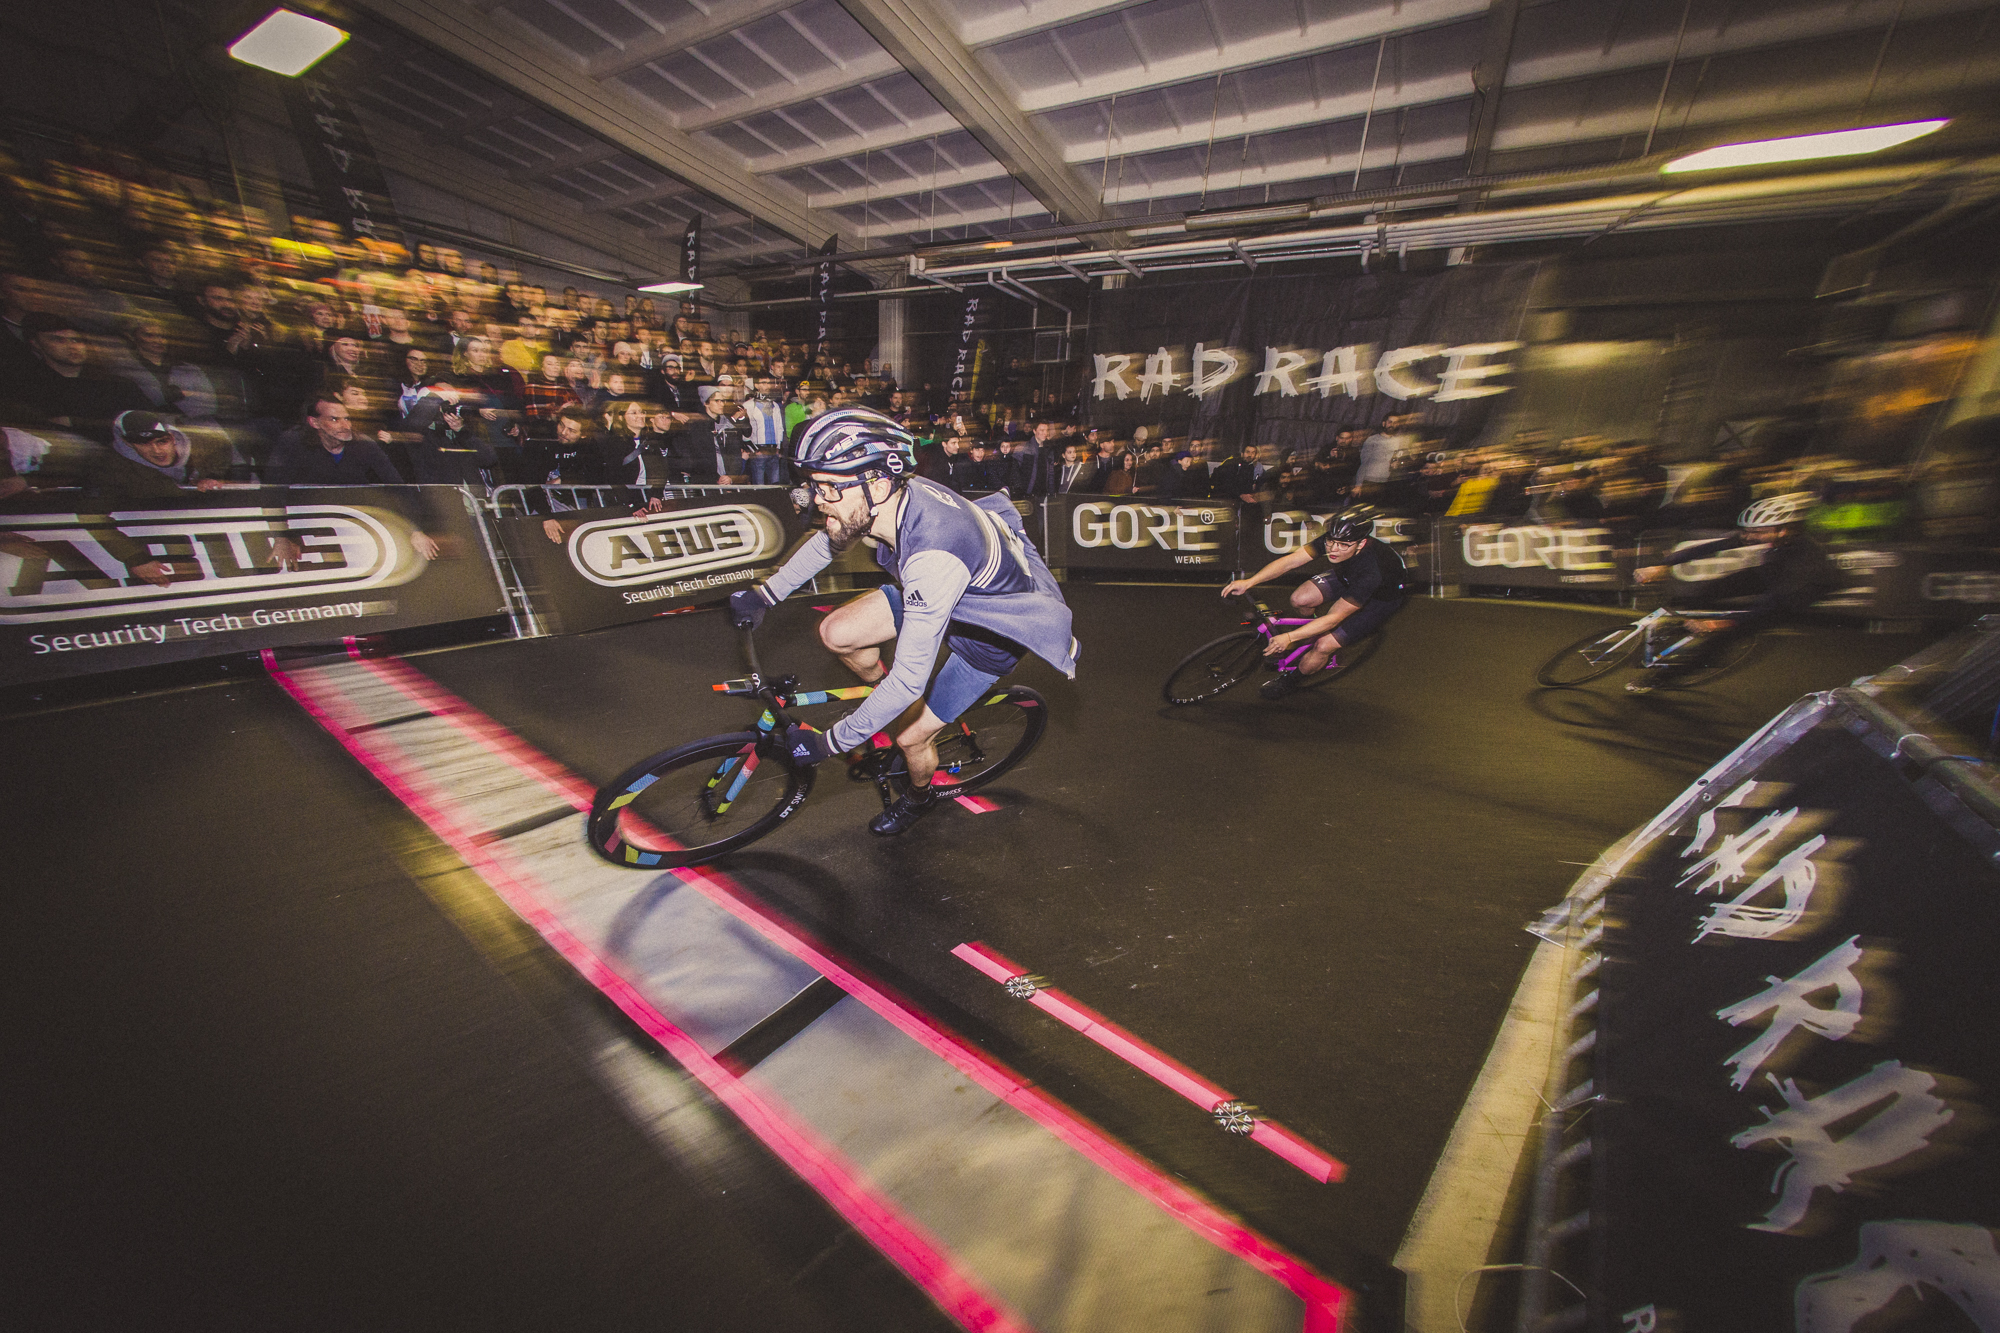 Rad_Race_Berlin_2019_Arturs_Pavlovs (108 of 110).jpeg